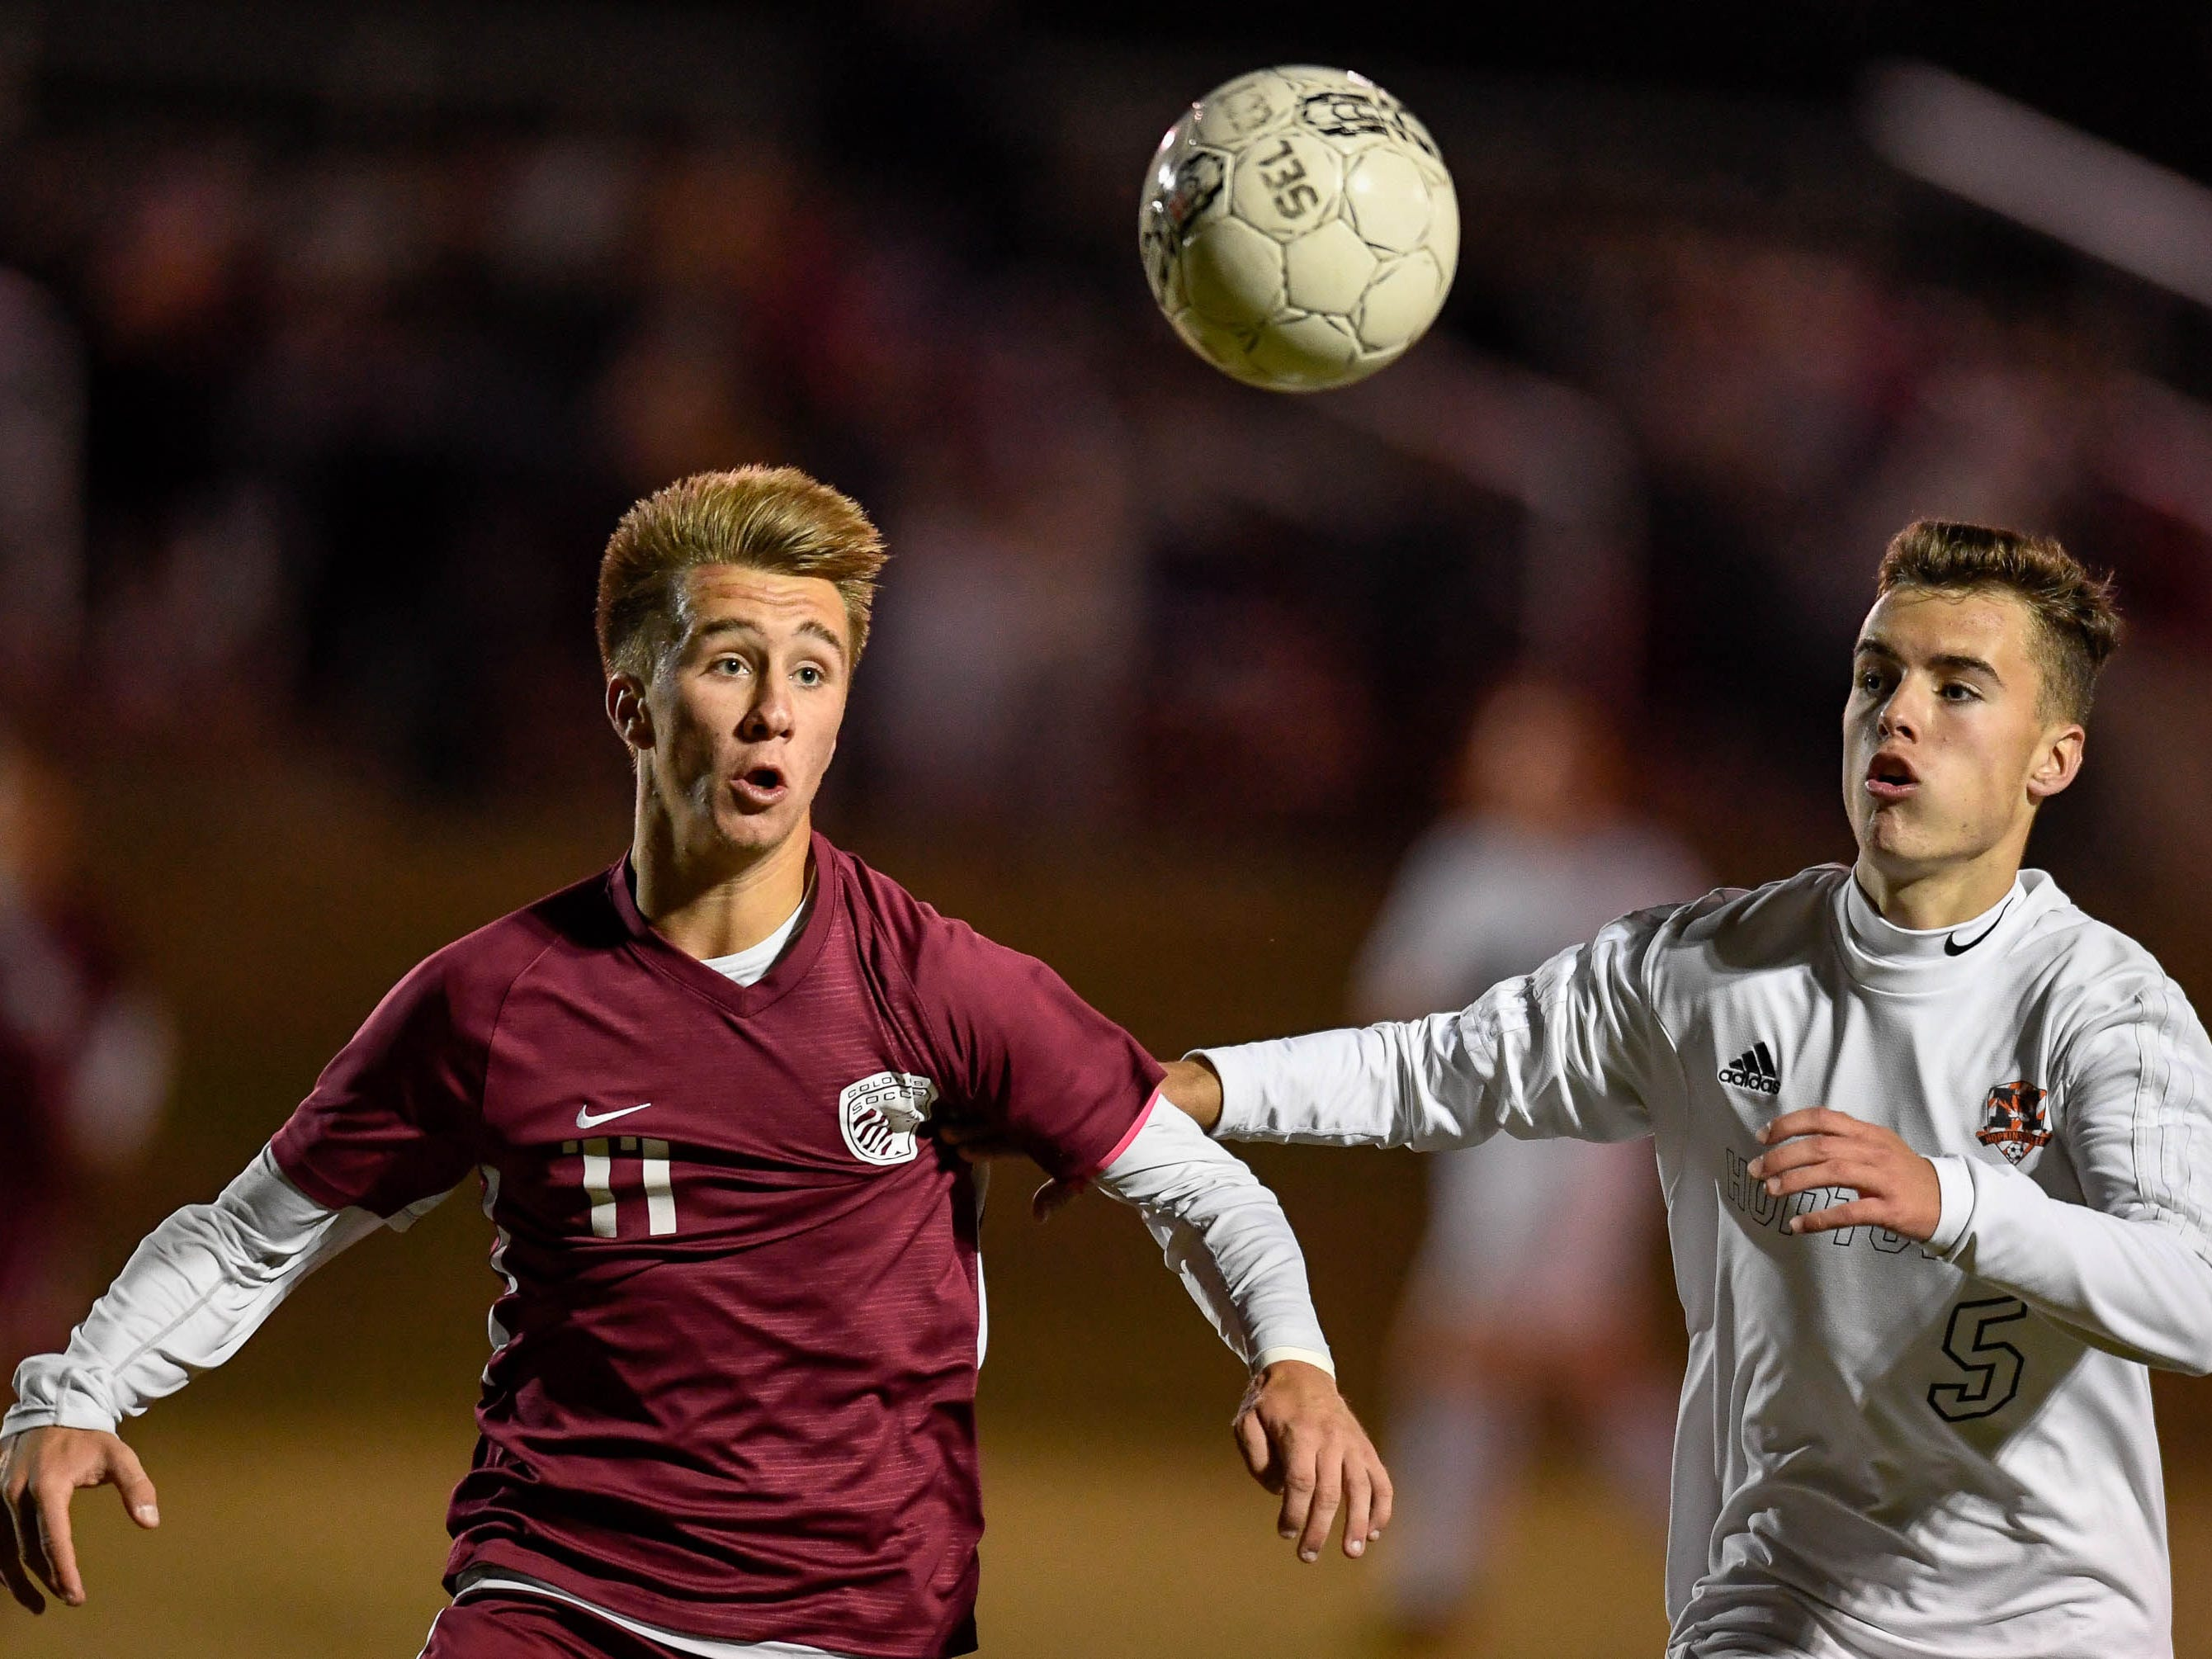 Henderson County's Max Wawrin (11) and Hopkinsville's Mason Rye (5) go for the ball as the Henderson County Colonels play the Hopkinsville Tigers in the regional final at Madisonville-North Hopkins High School Thursday, October 18, 2018.